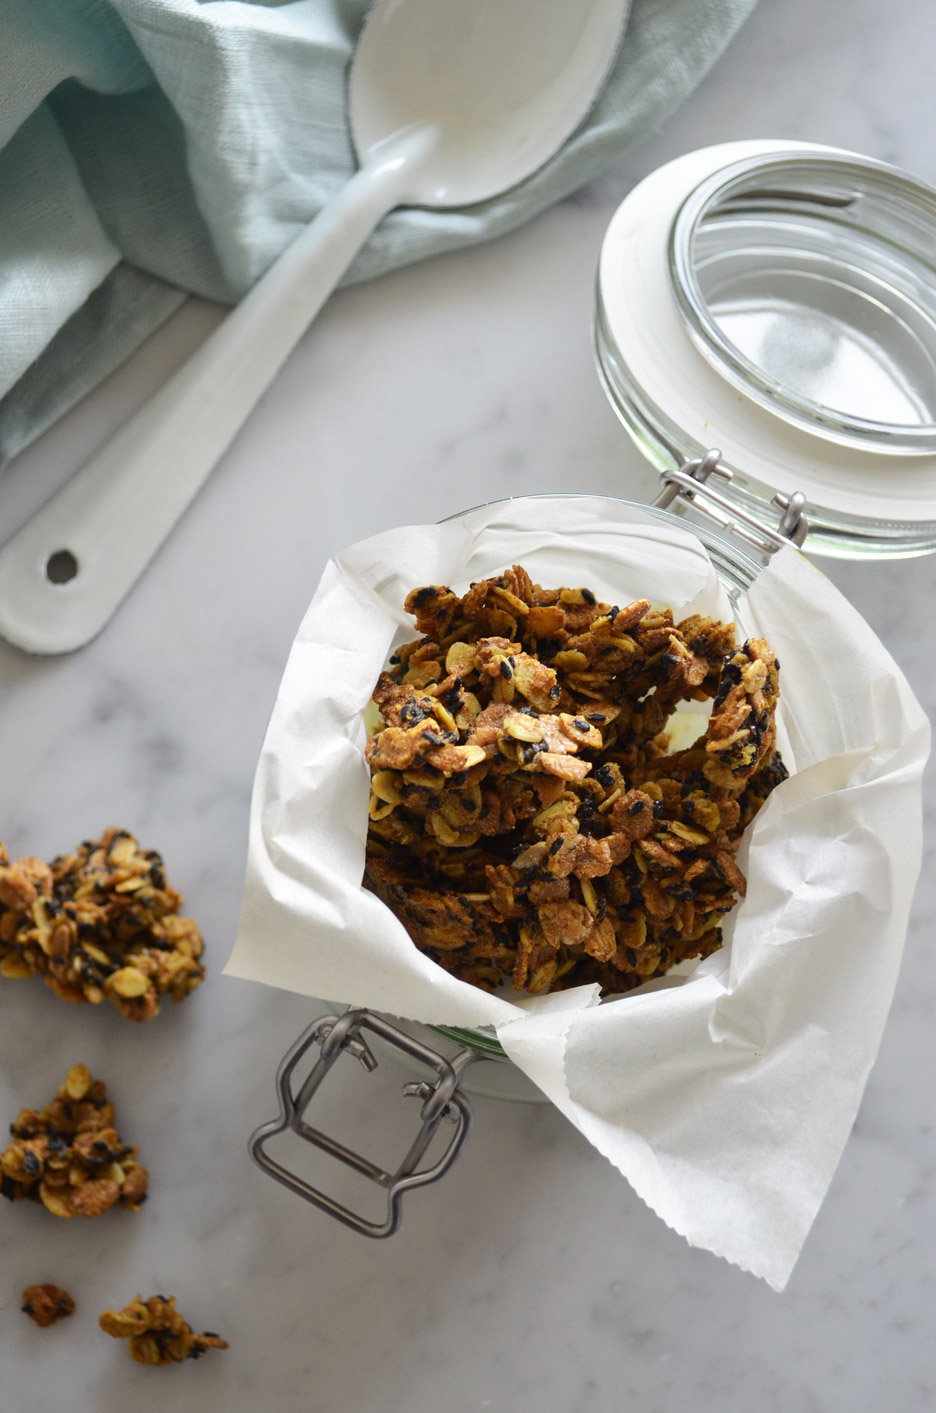 Vegan and gluten-free savory granola